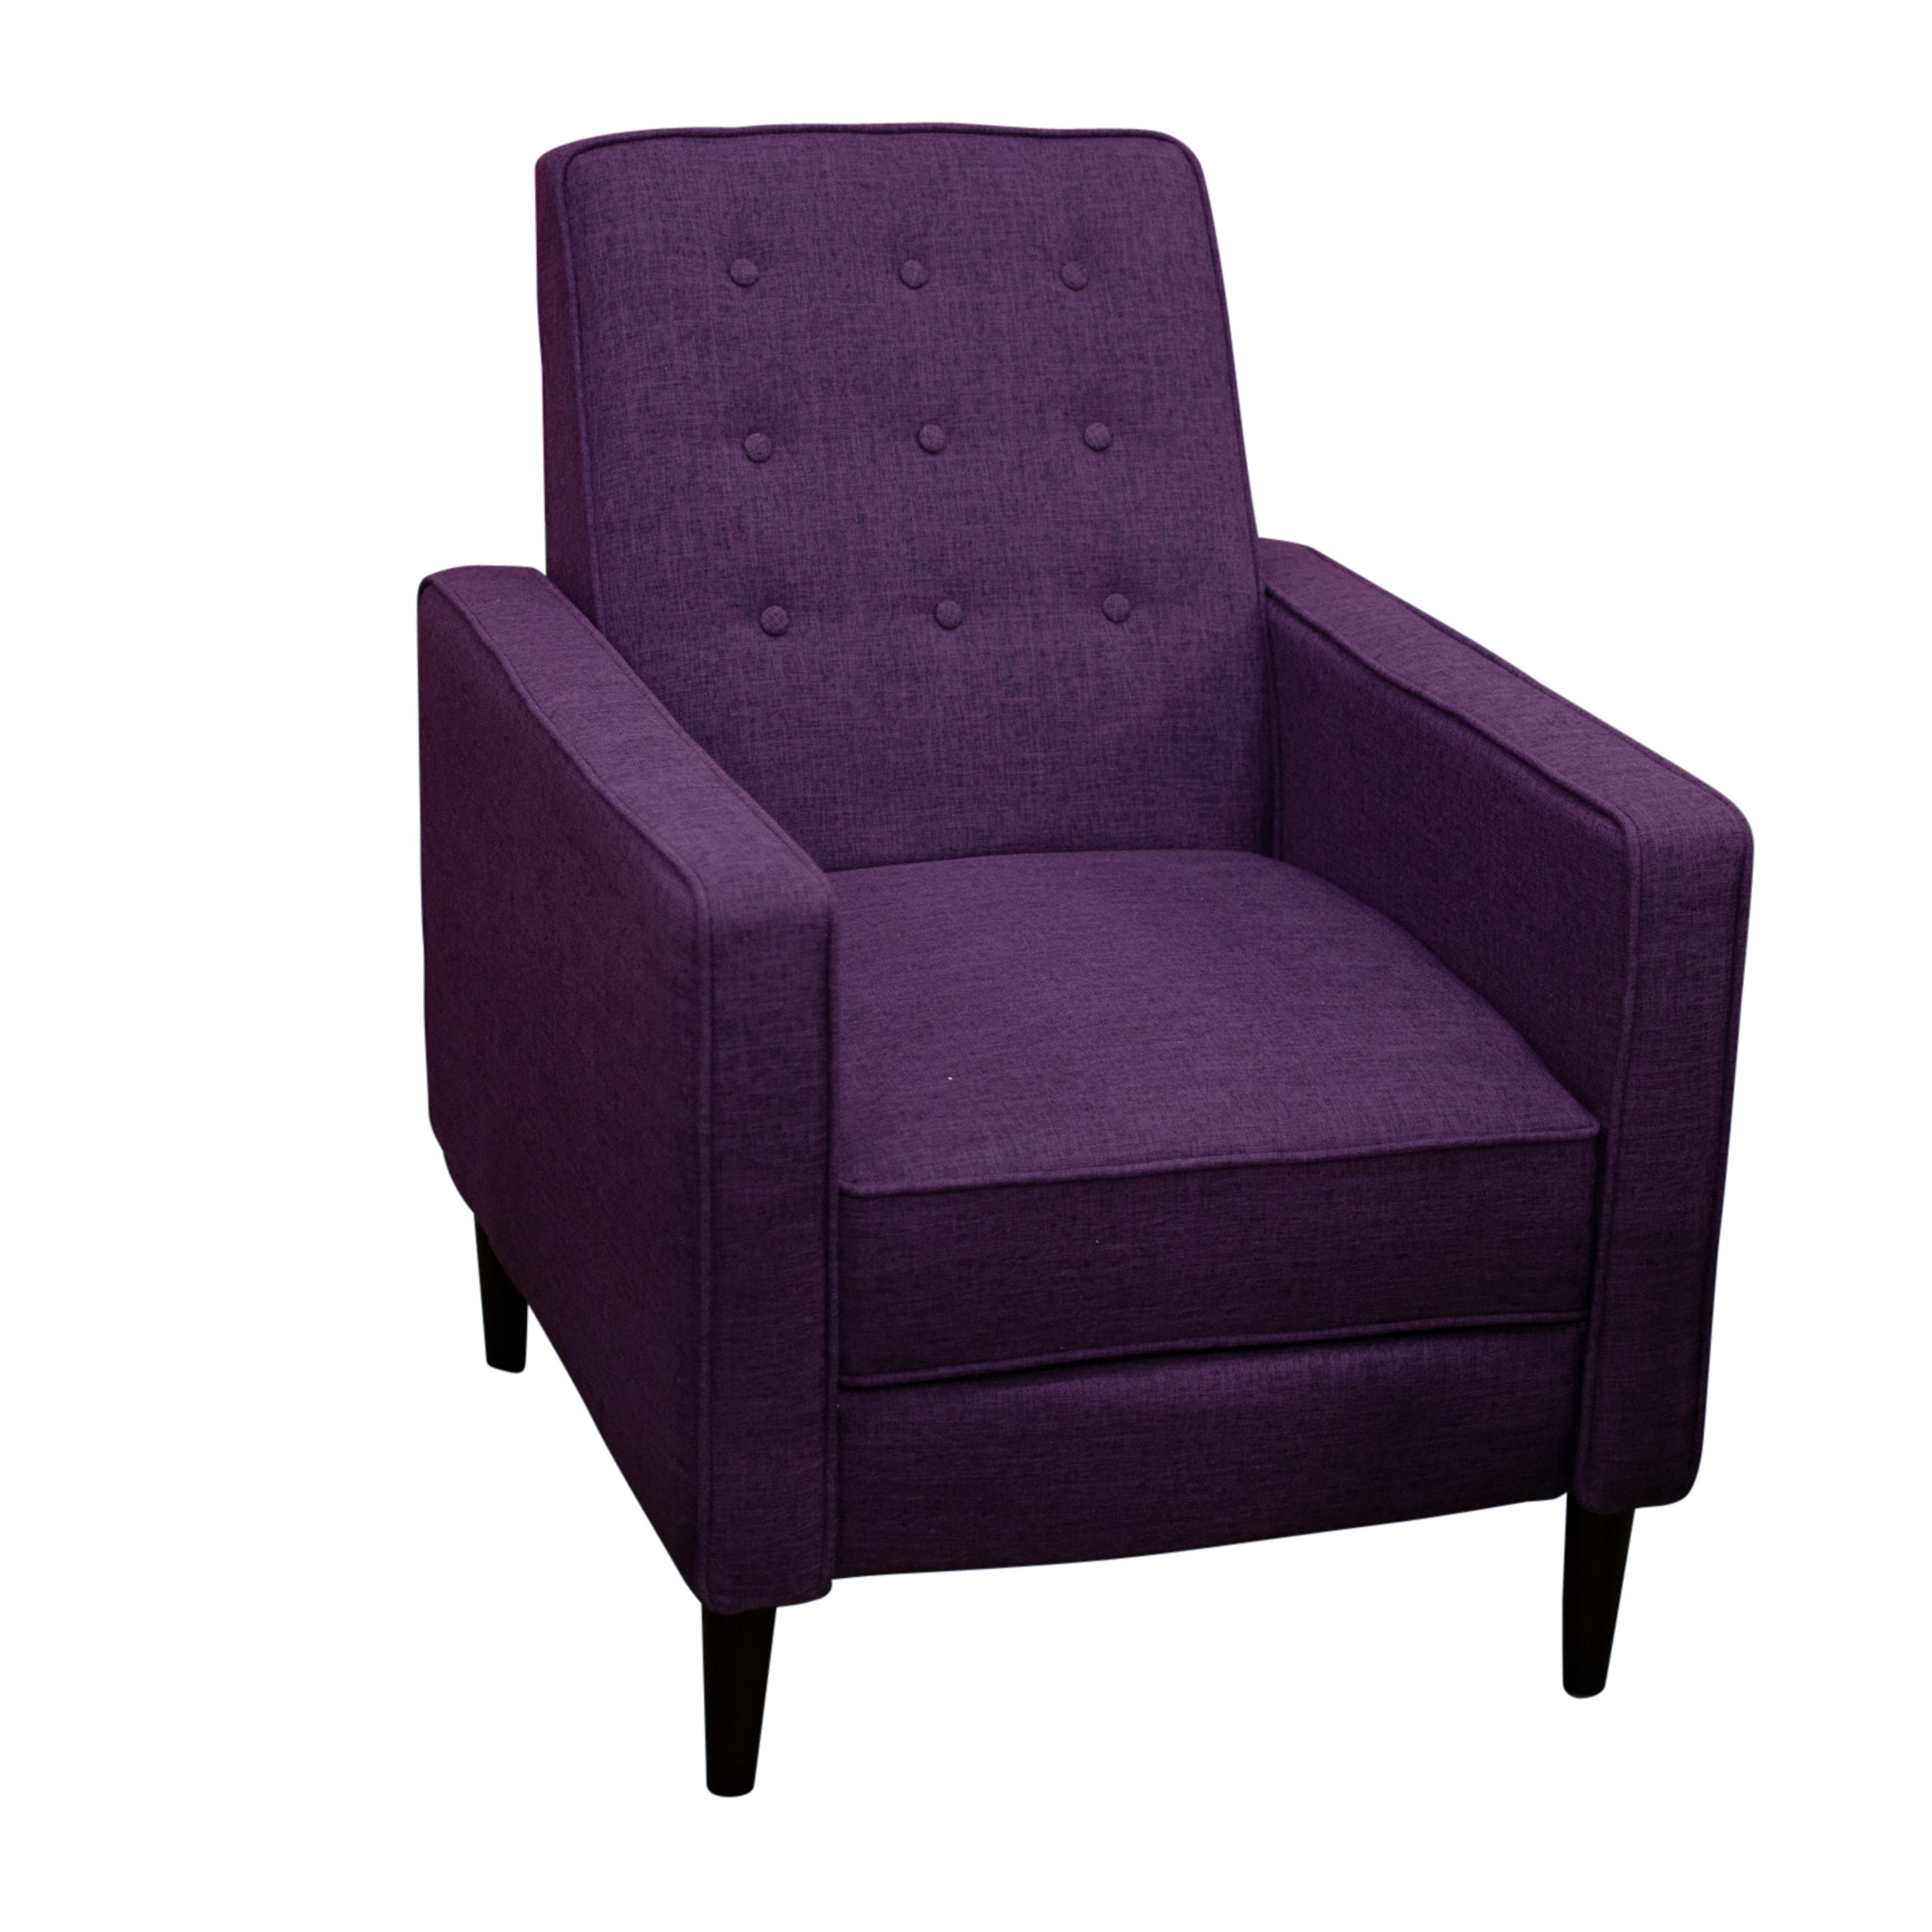 Purple Upholstered Tufted Reclining Club Chair, Contemporary